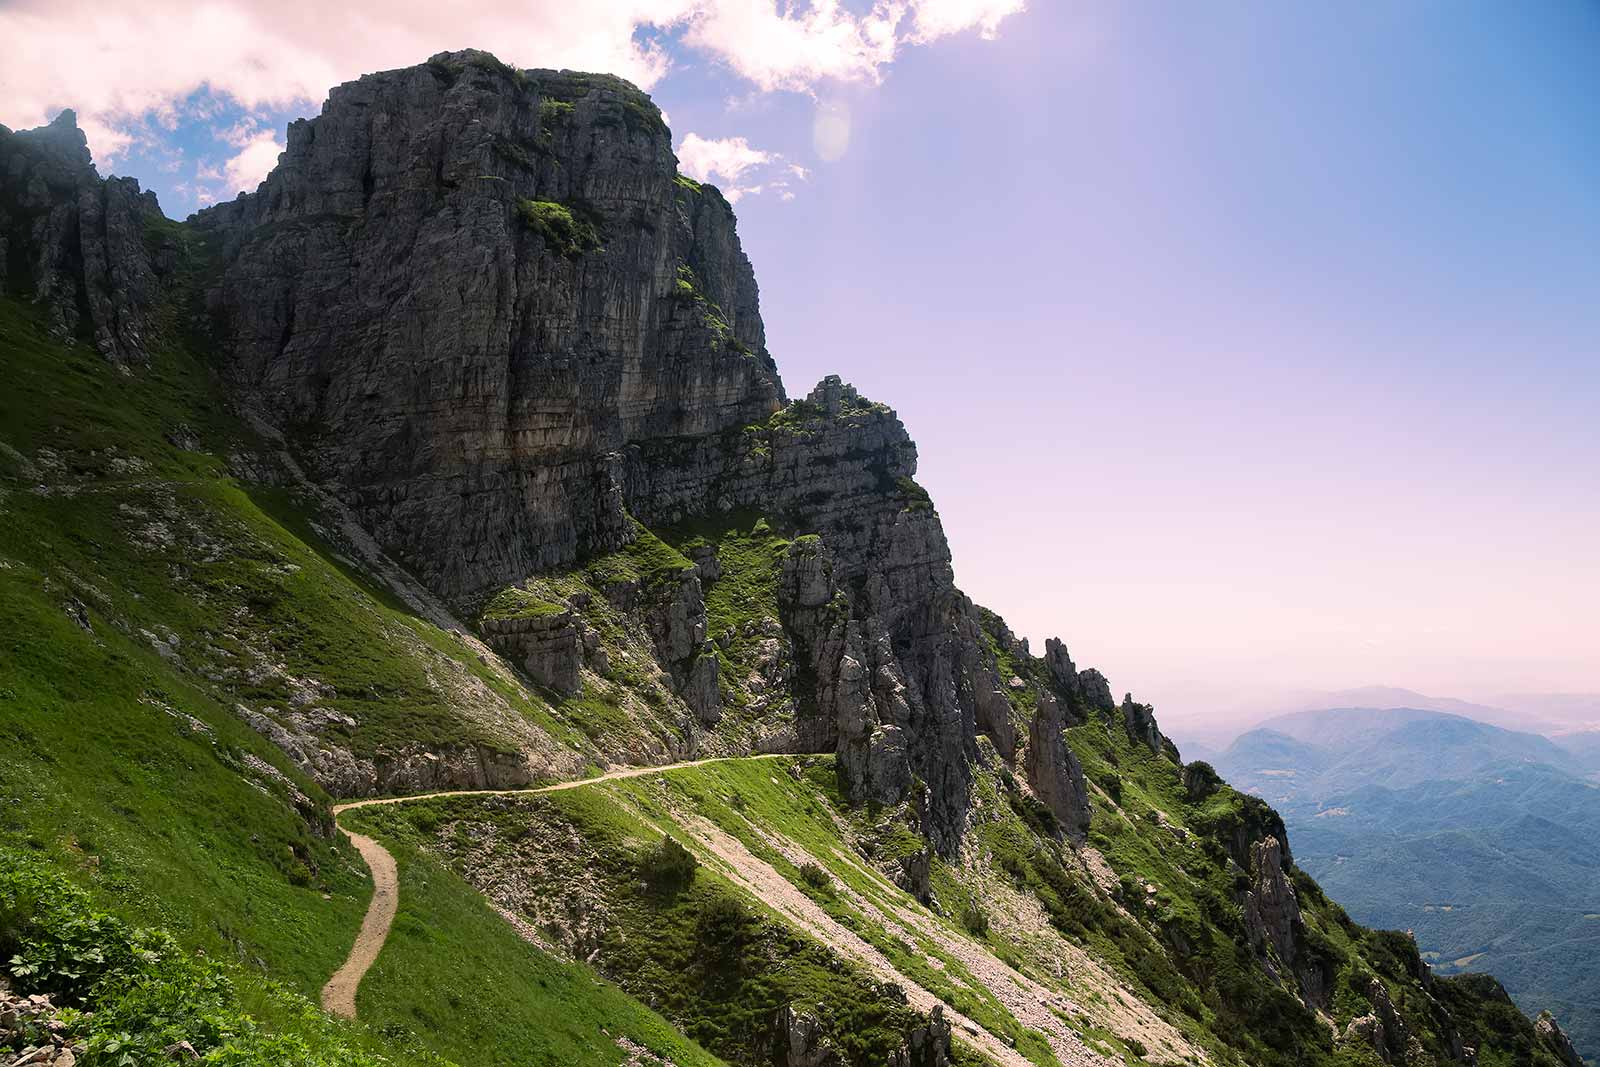 The Strada delle 52 Gallerie trail alternates between a dirt track and tunnels dug out of the mountain.